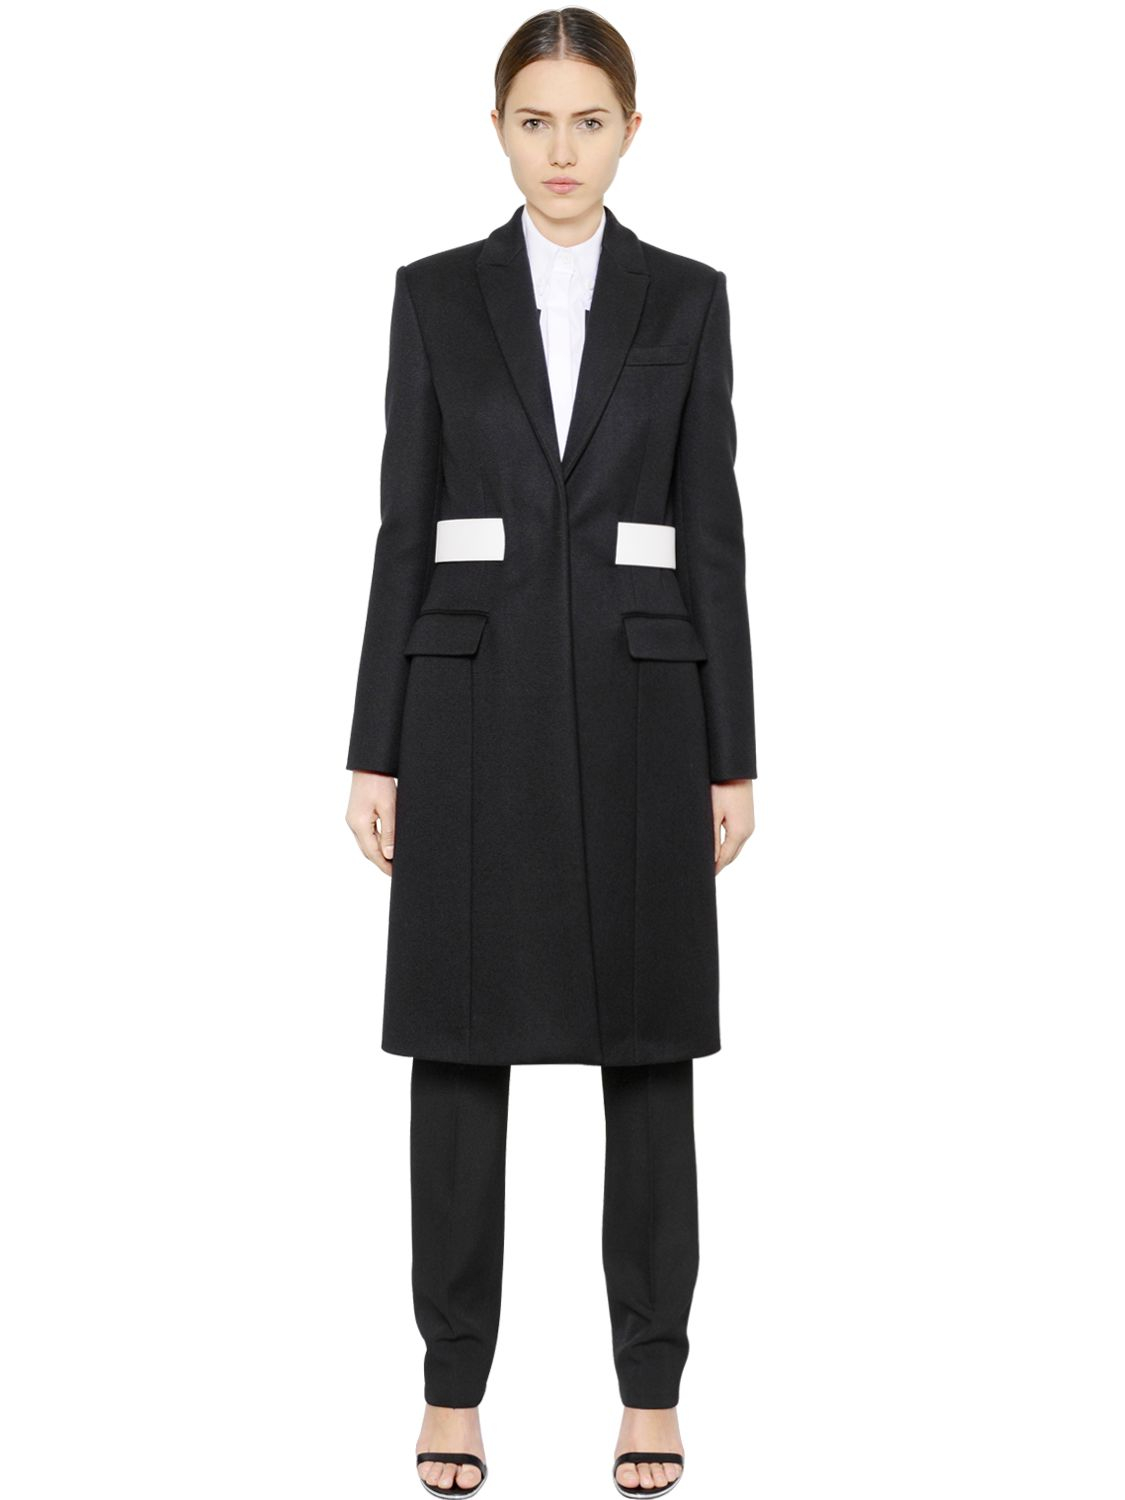 Givenchy Military Melton Wool Coat in Black | Lyst